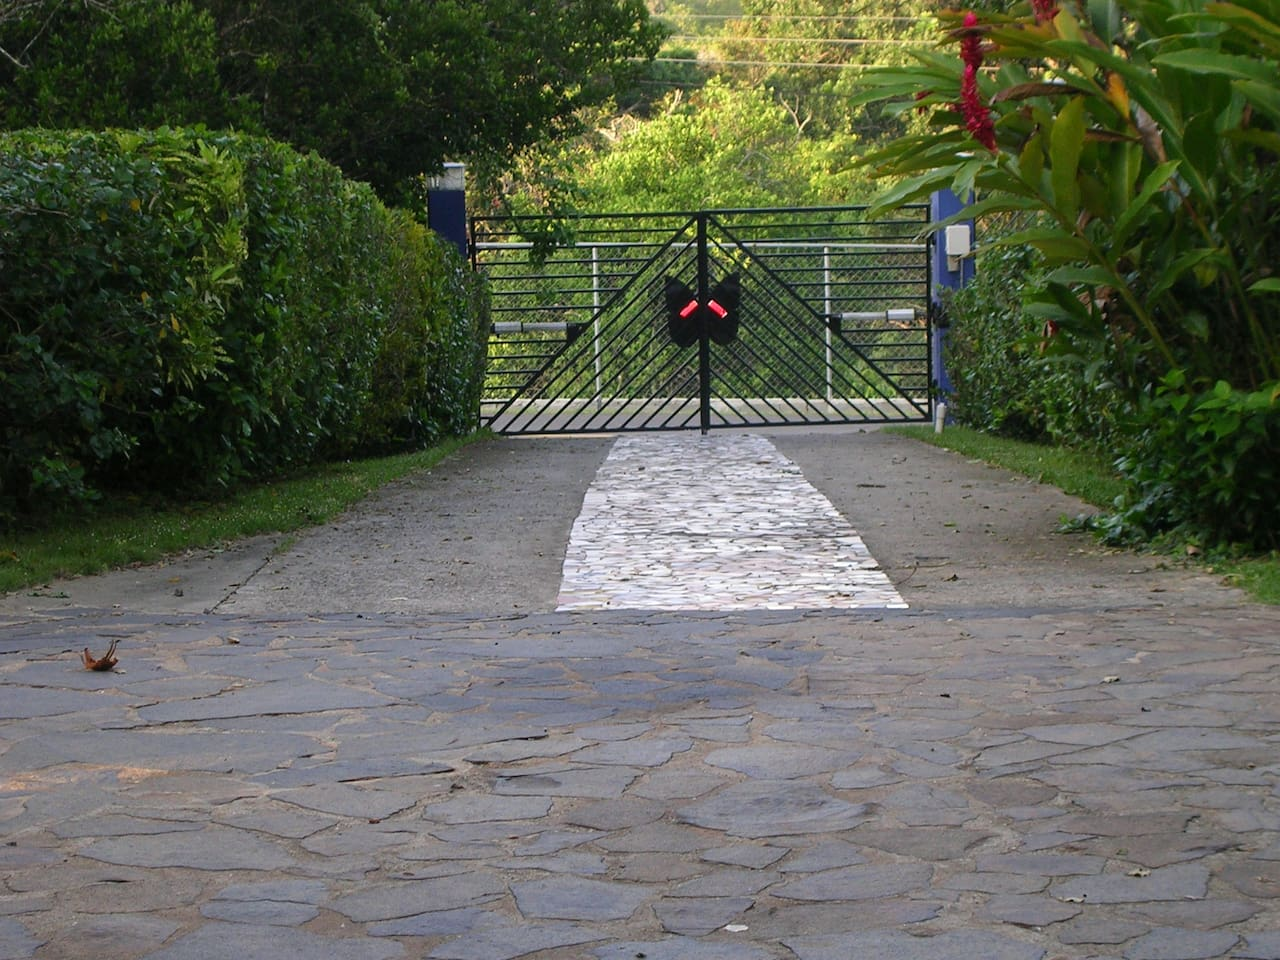 Villa Mariposa drveway. Gate has butterfly on it. Left on the main road, across the 'Bet-El,' Church.